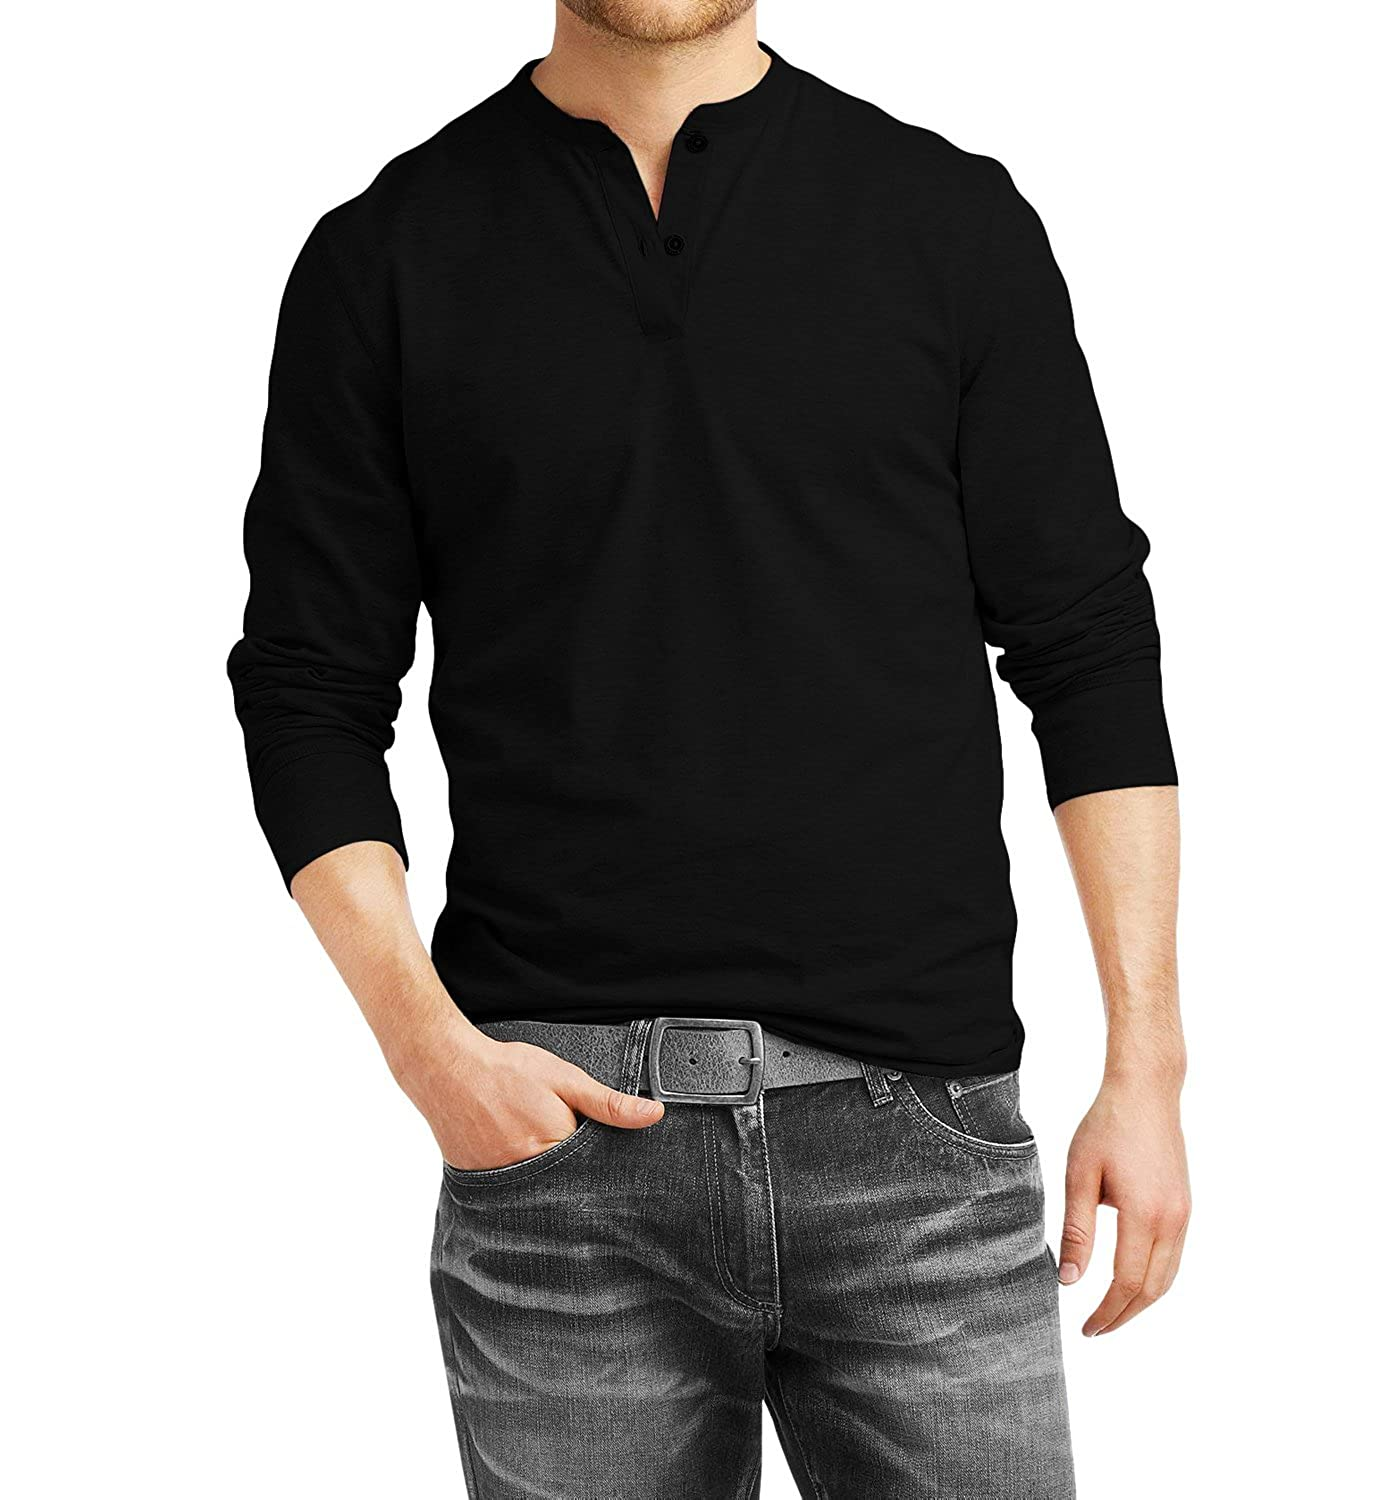 0f6a2e3964 100% Cotton Imported Comfort  Best Fashionably Comfortable Cool Henley T  Shirts that you have worn till now. Sleeve Type  Full Sleeve T-Shirt  Note   Neck ...